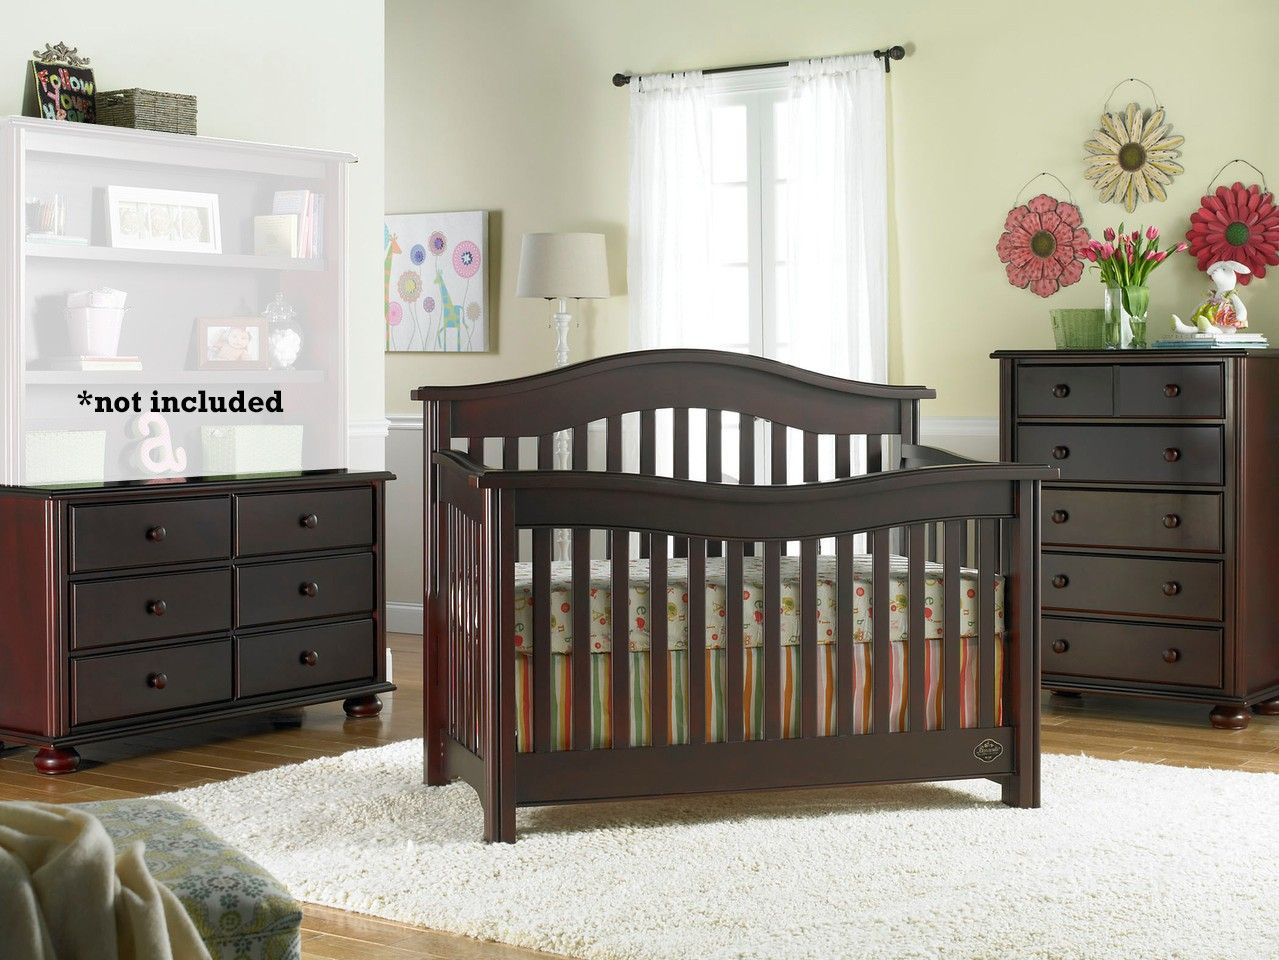 Bonavita Kinsley 3 Piece Nursery Set in Classic Cherry - Crib ...